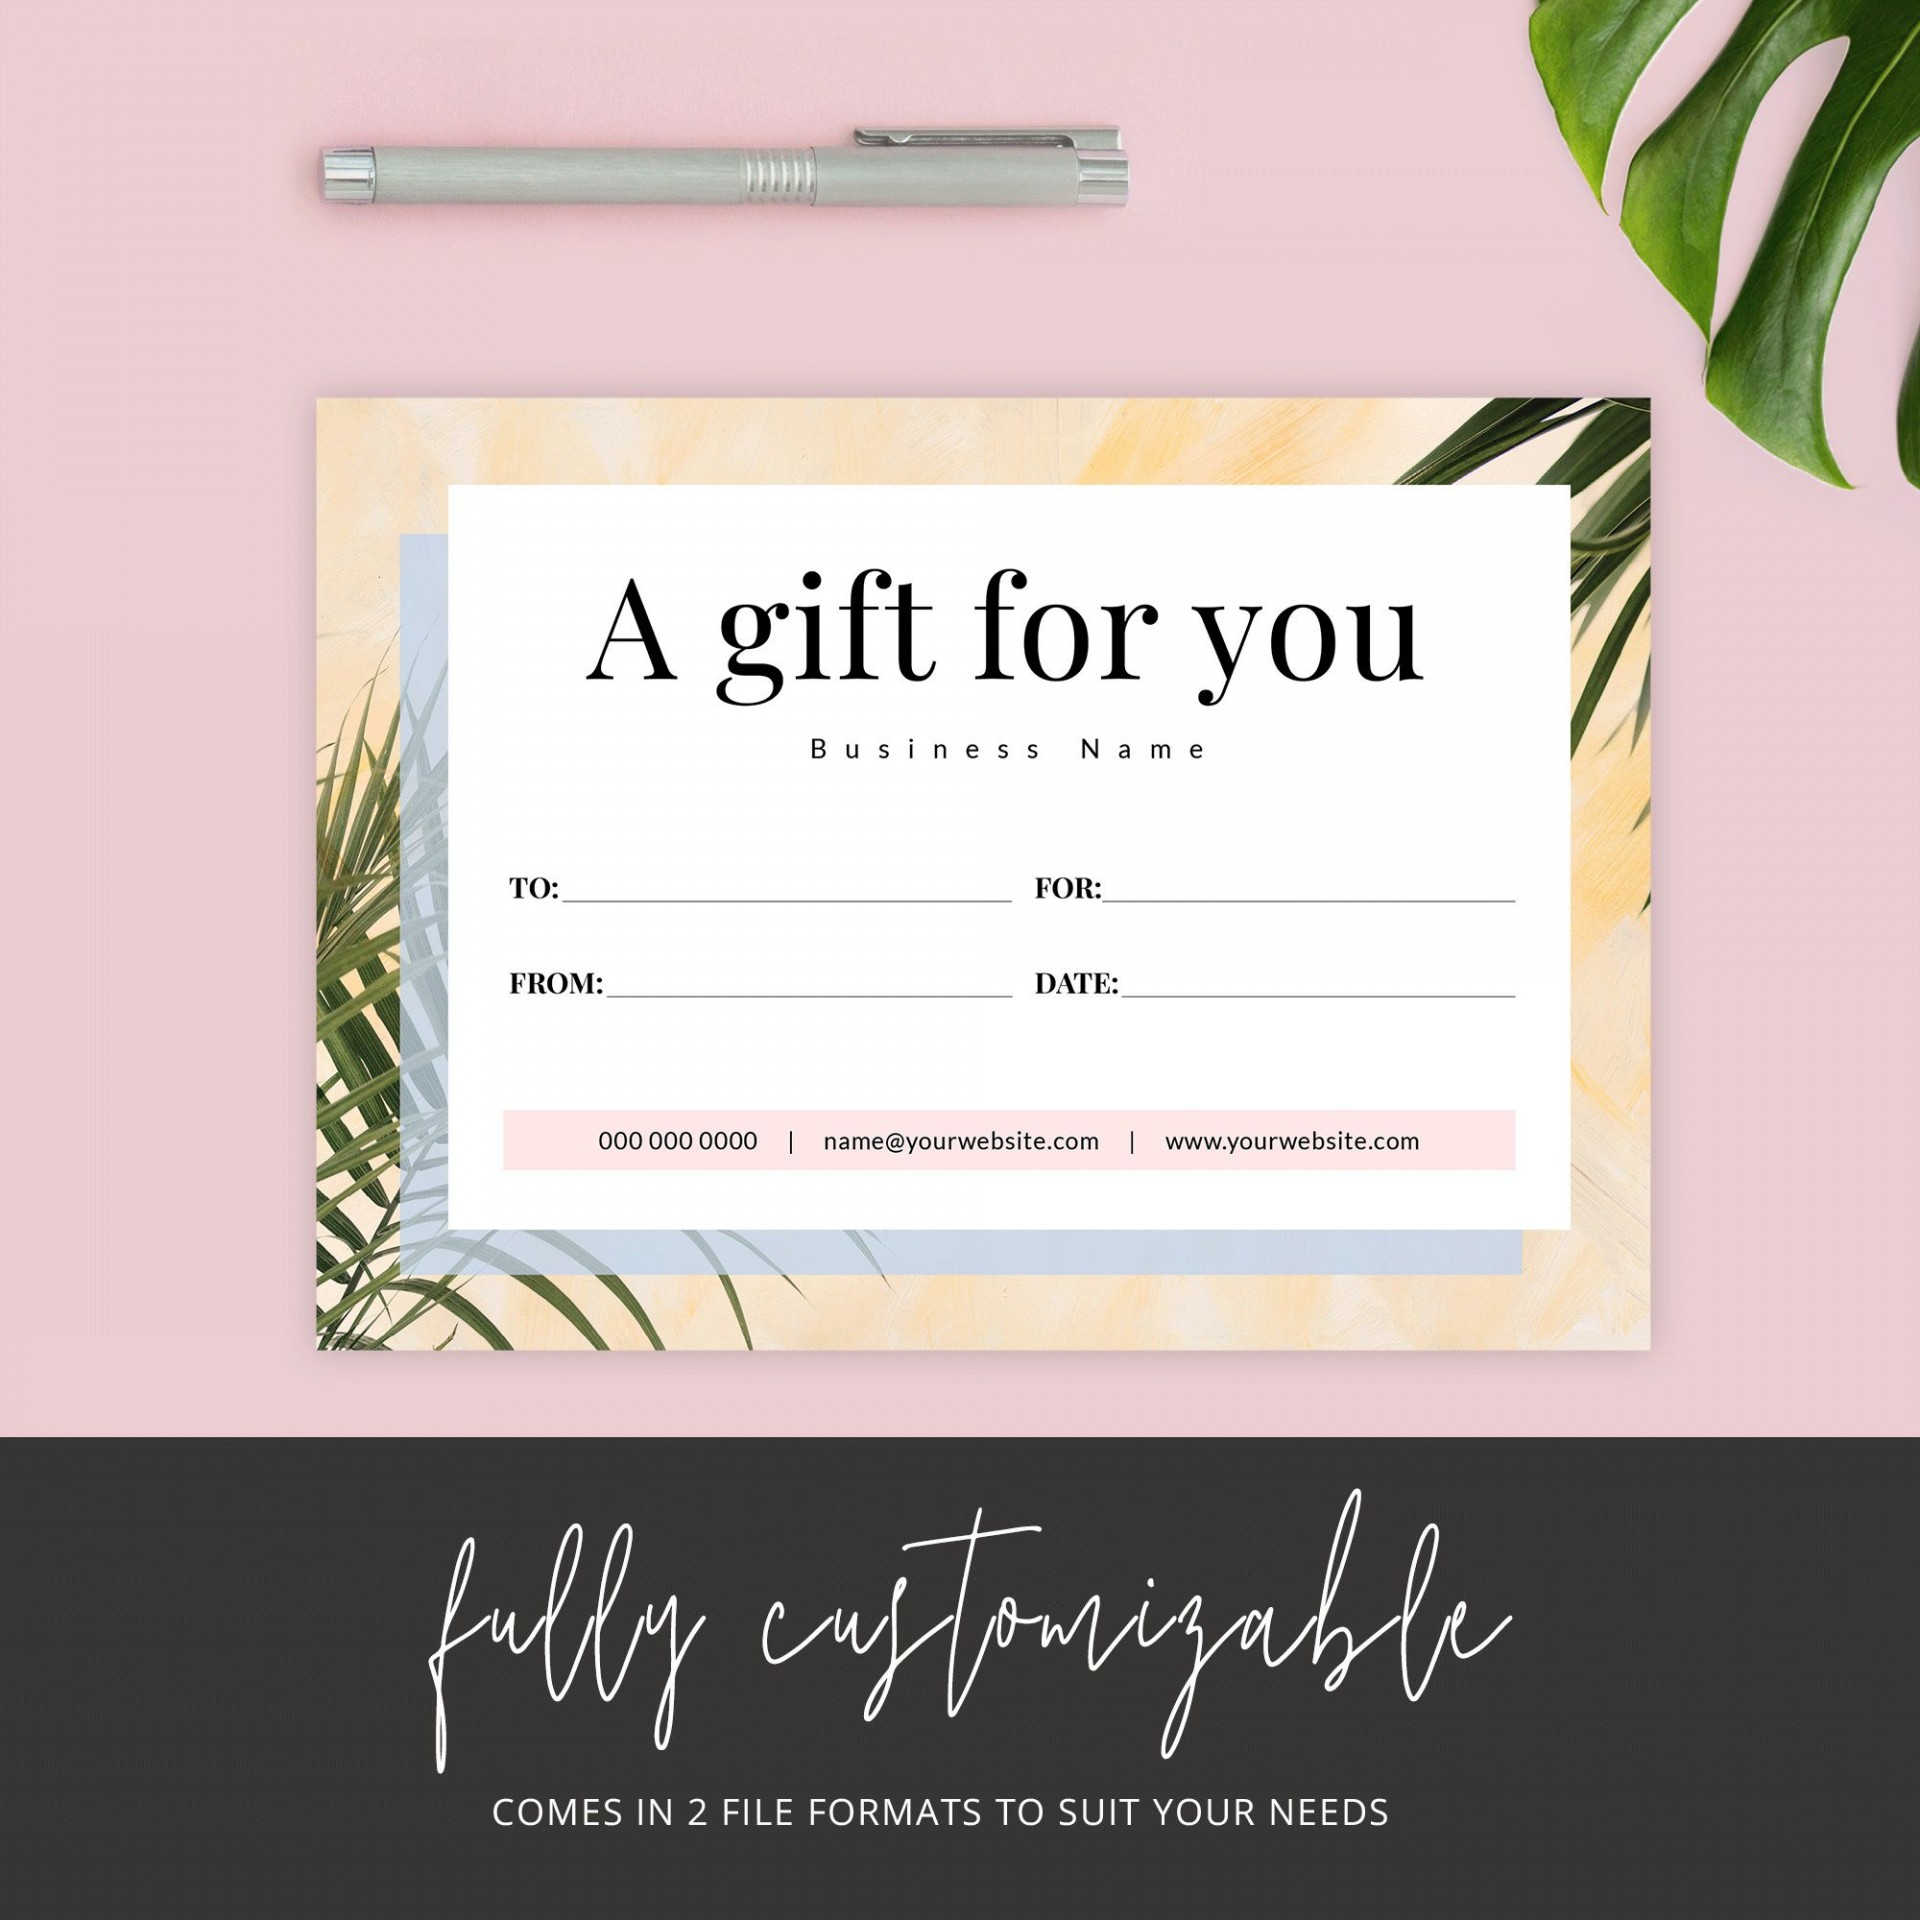 006 Archaicawful Printable Gift Certificate Template Design  Card Free Christma Massage1920